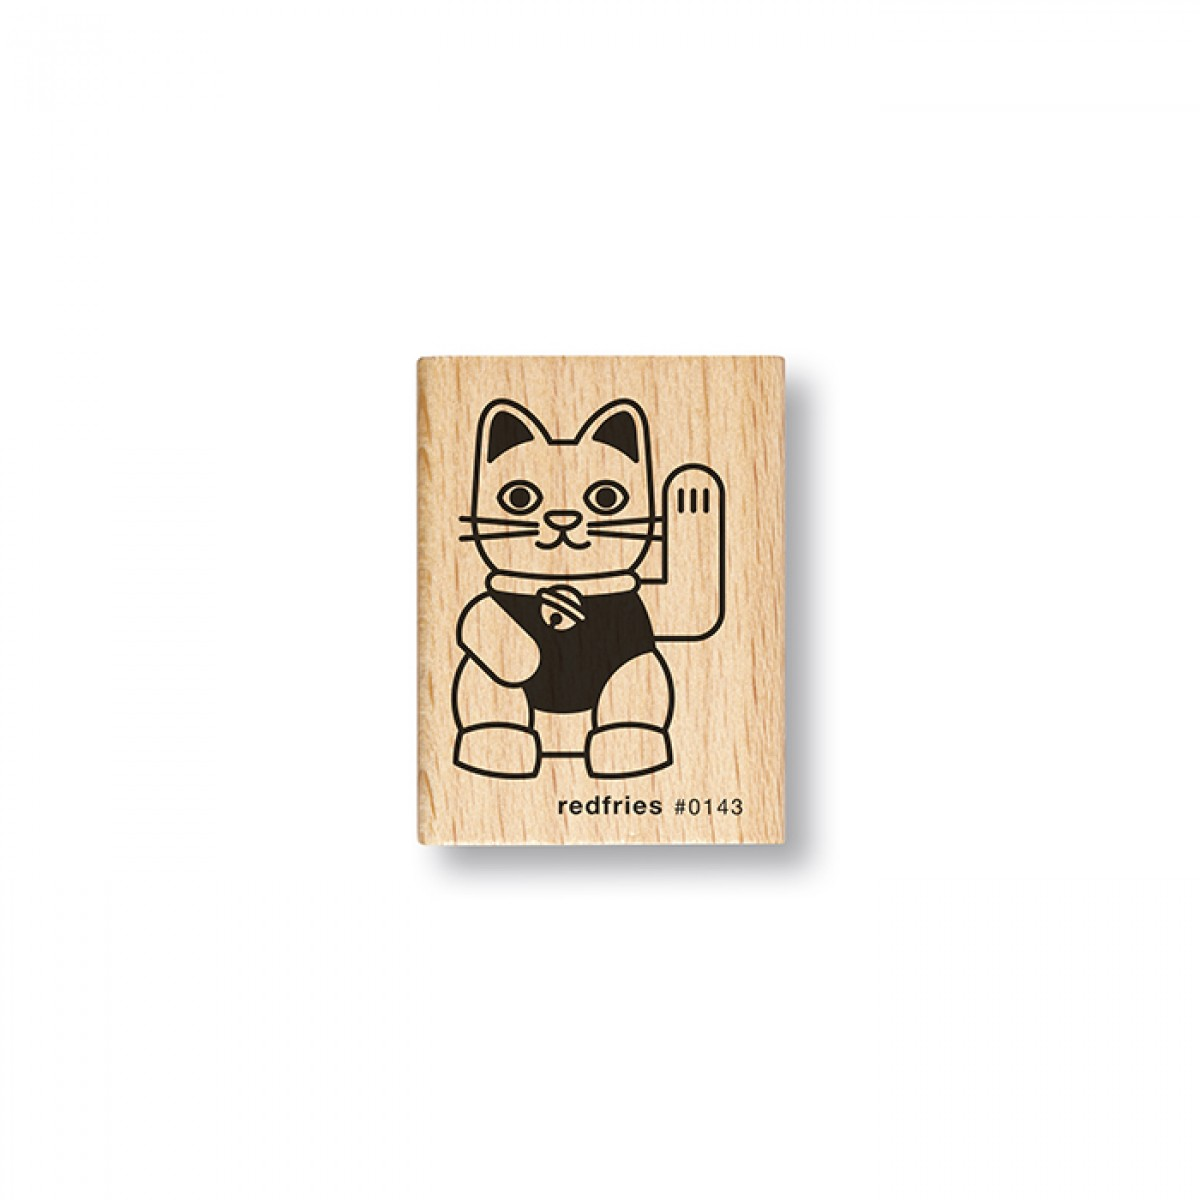 redfries stamp lucky charm – Stempel